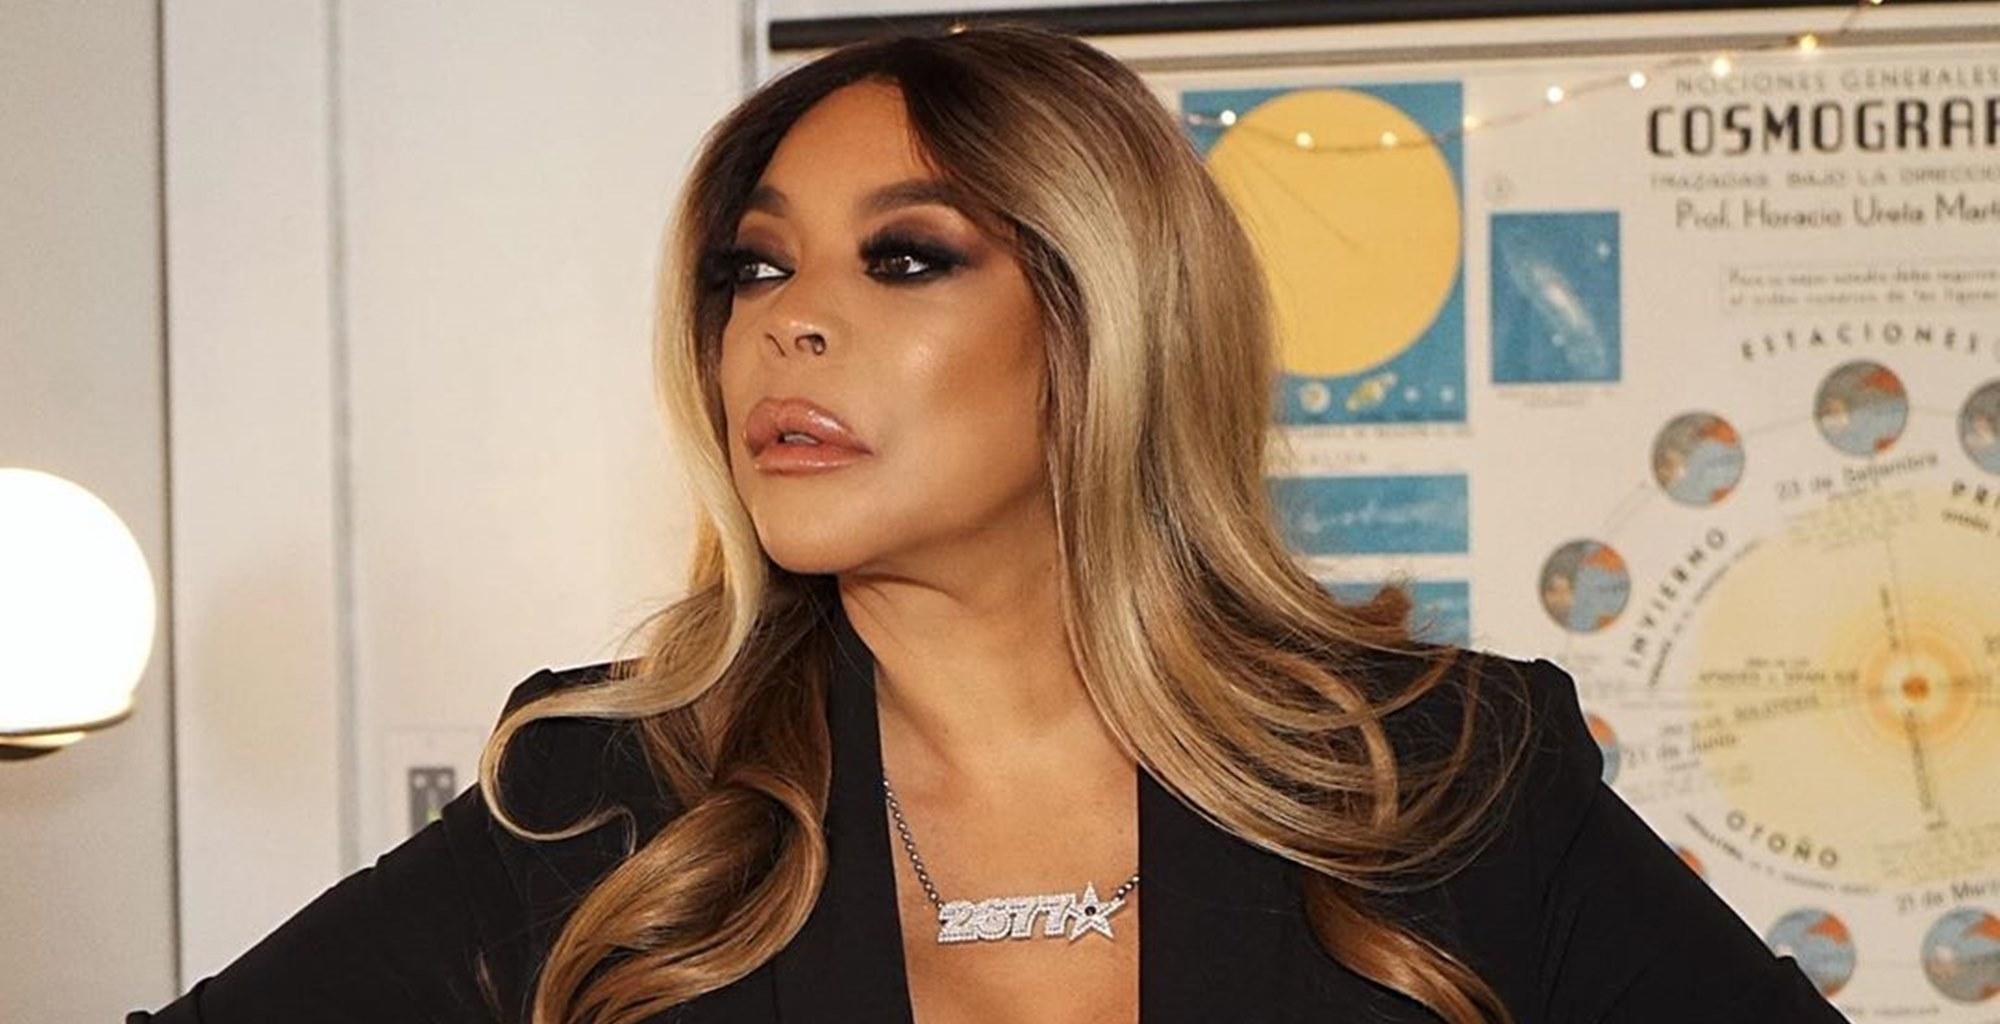 Wendy Williams Finally Gives An Update On Her Friendship With NeNe Leakes After Dropping This Bombshell That Rocked 'The Real Housewives Of Atlanta'